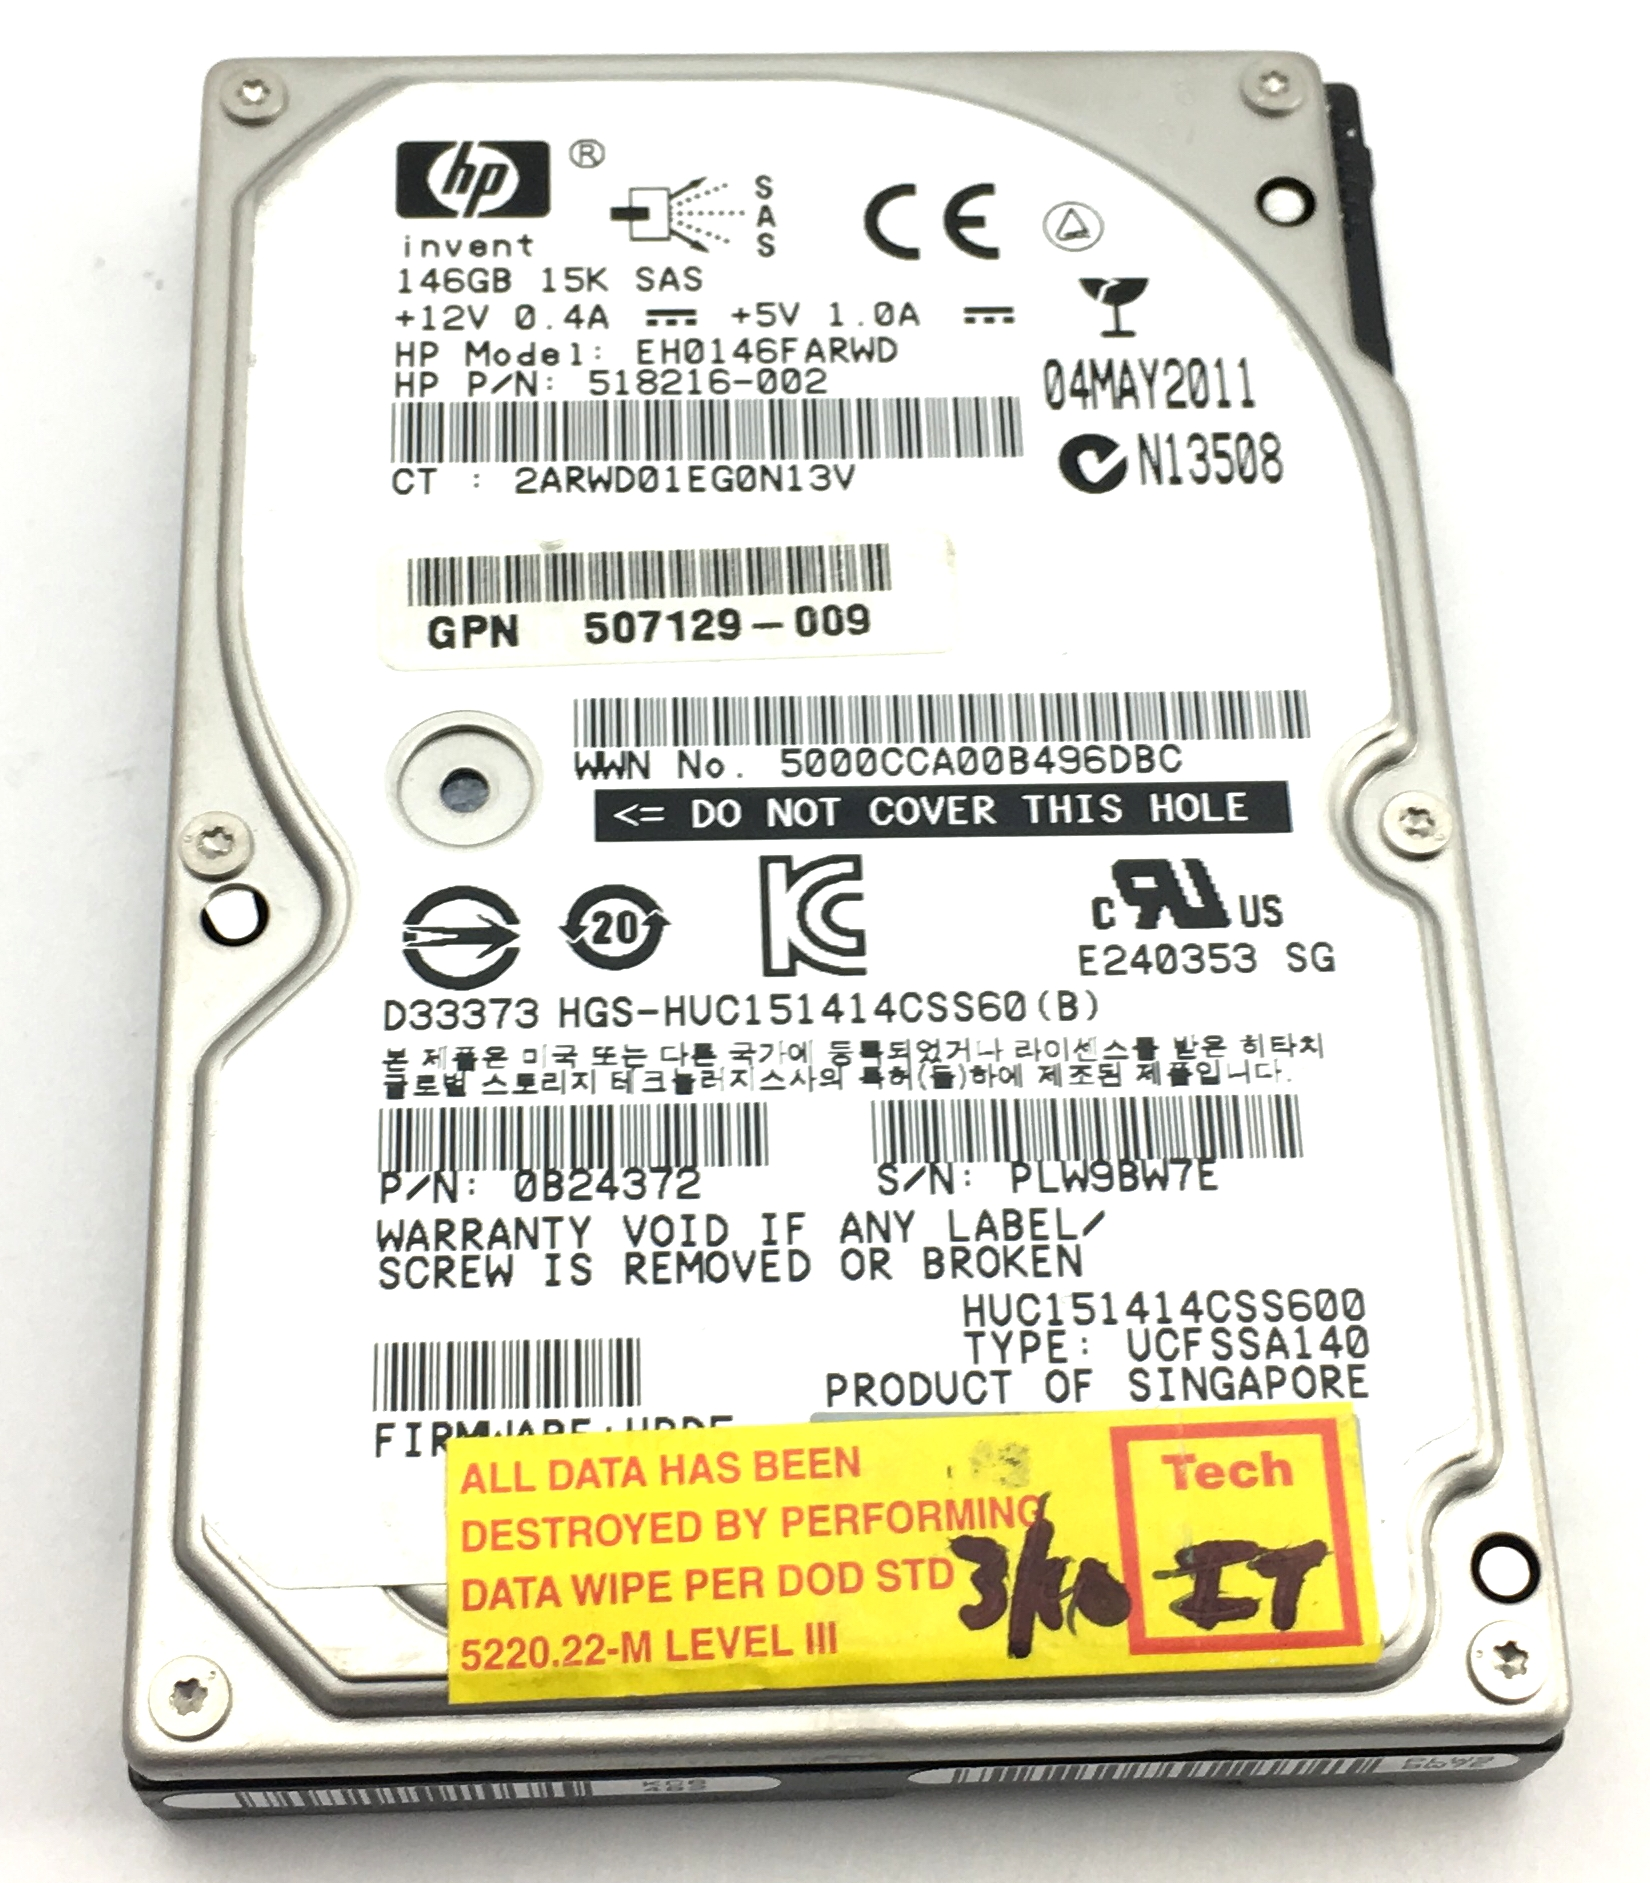 HP 146GB 15K SAS 6Gbp 2.5'' Hard Drive (518216-002)